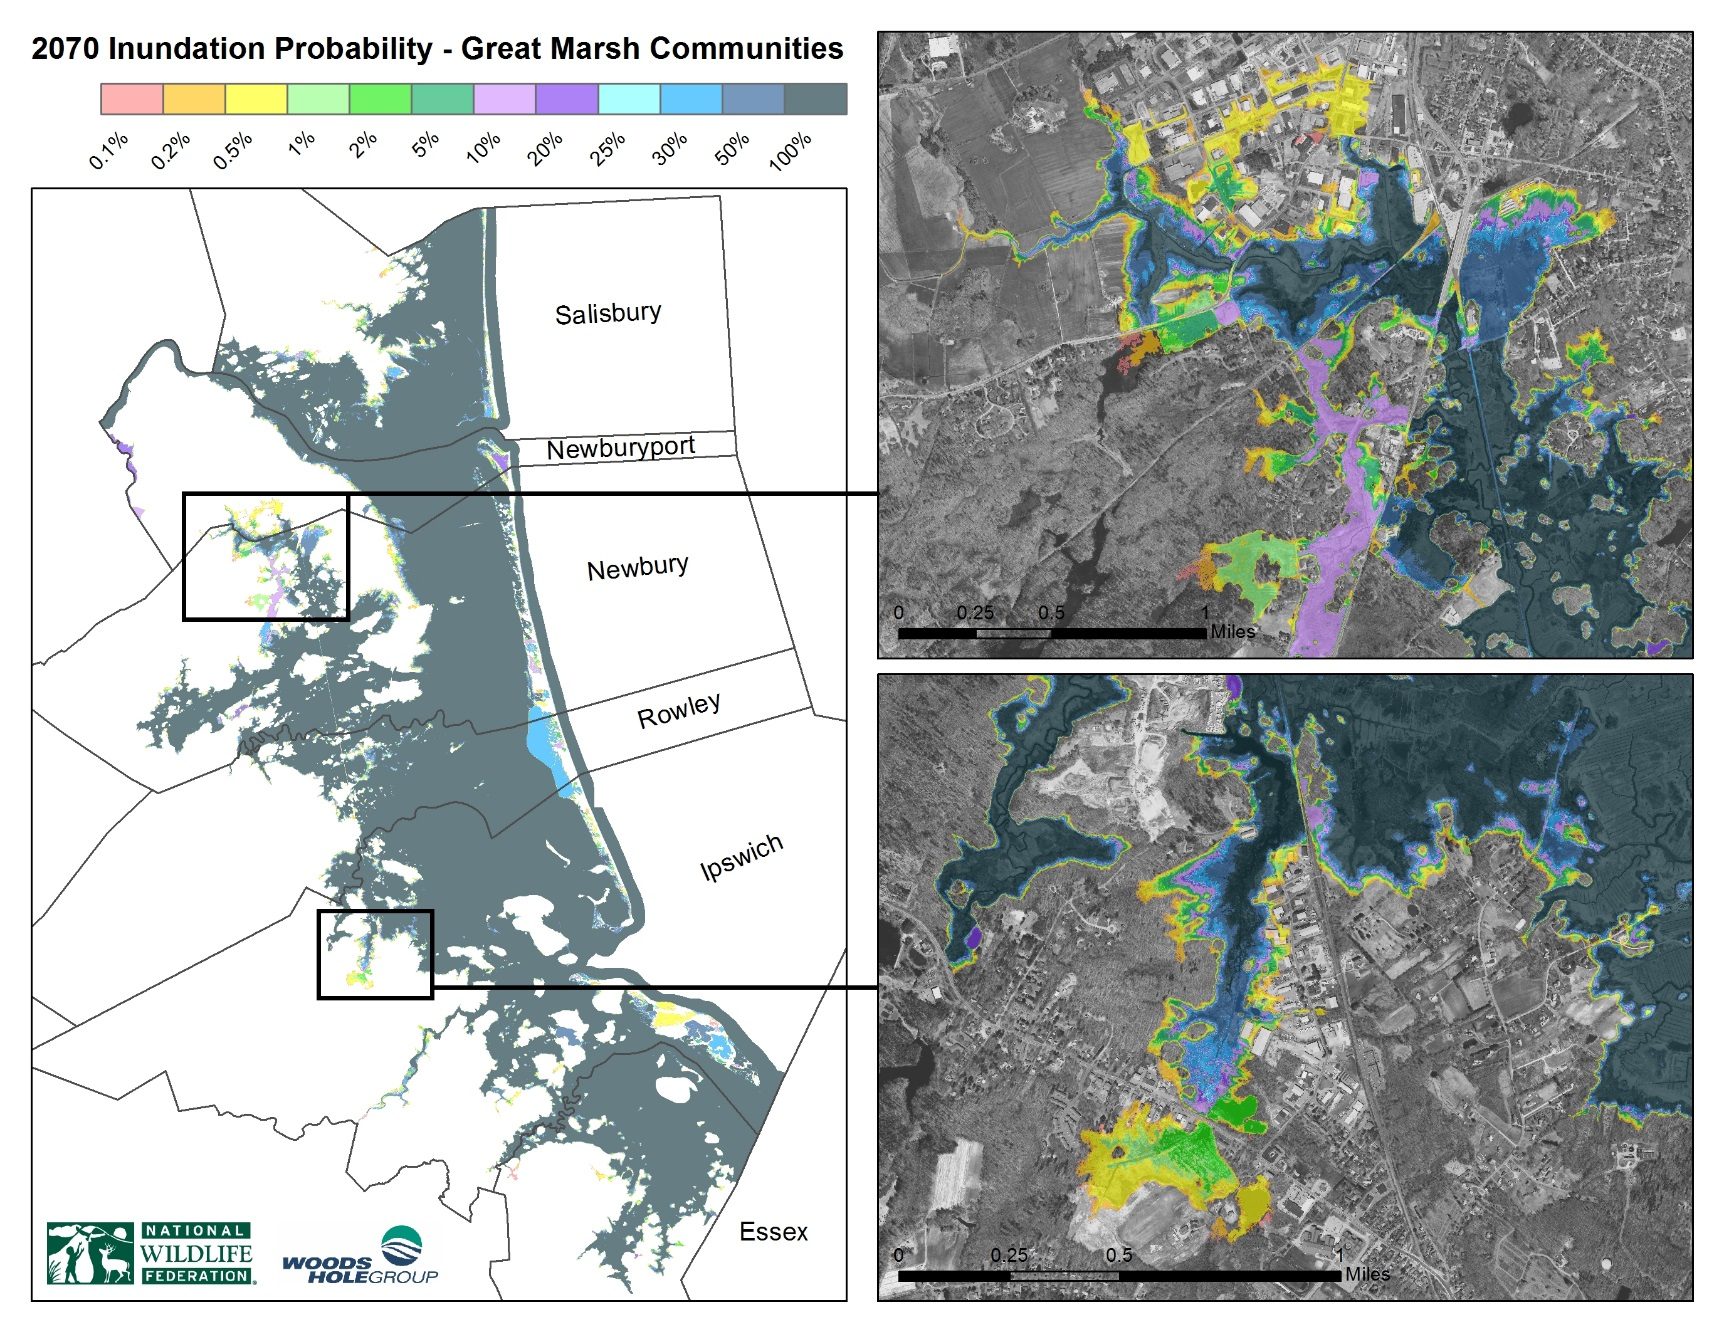 New Maps Produced By The Environmental Consulting Firm Woods Hole Group Will Provide The Great Marsh Resiliency Planning Project With Cutting Edge, Fine-scaled Flooding And Sea Level Rise Scenarios In Essex County.